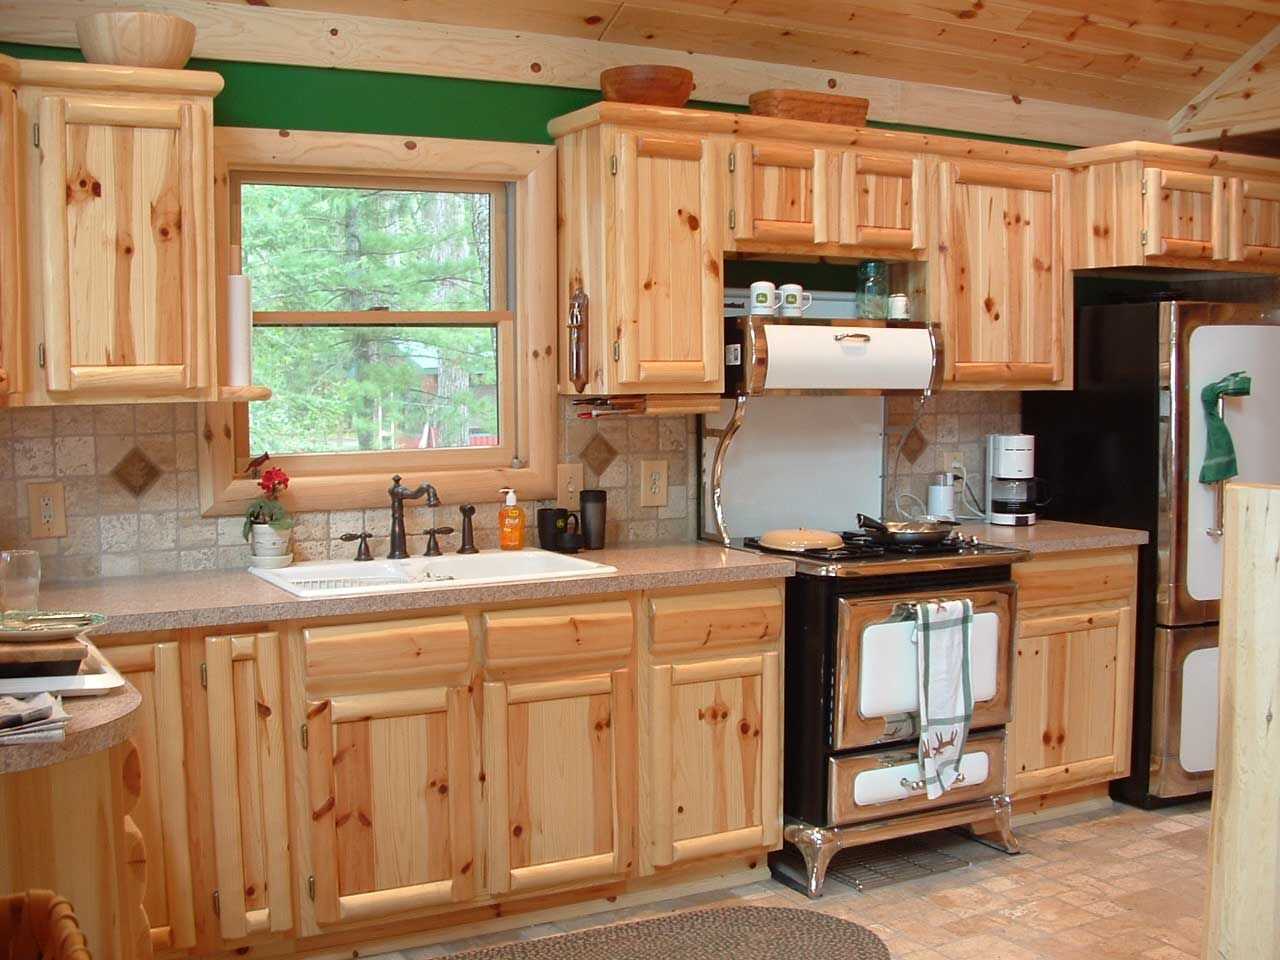 Knotty Pine Kitchen Cabinets A Premium Traditional Choice Designalls Pine Kitchen Cabinets Rustic Kitchen Cabinets Rustic Kitchen